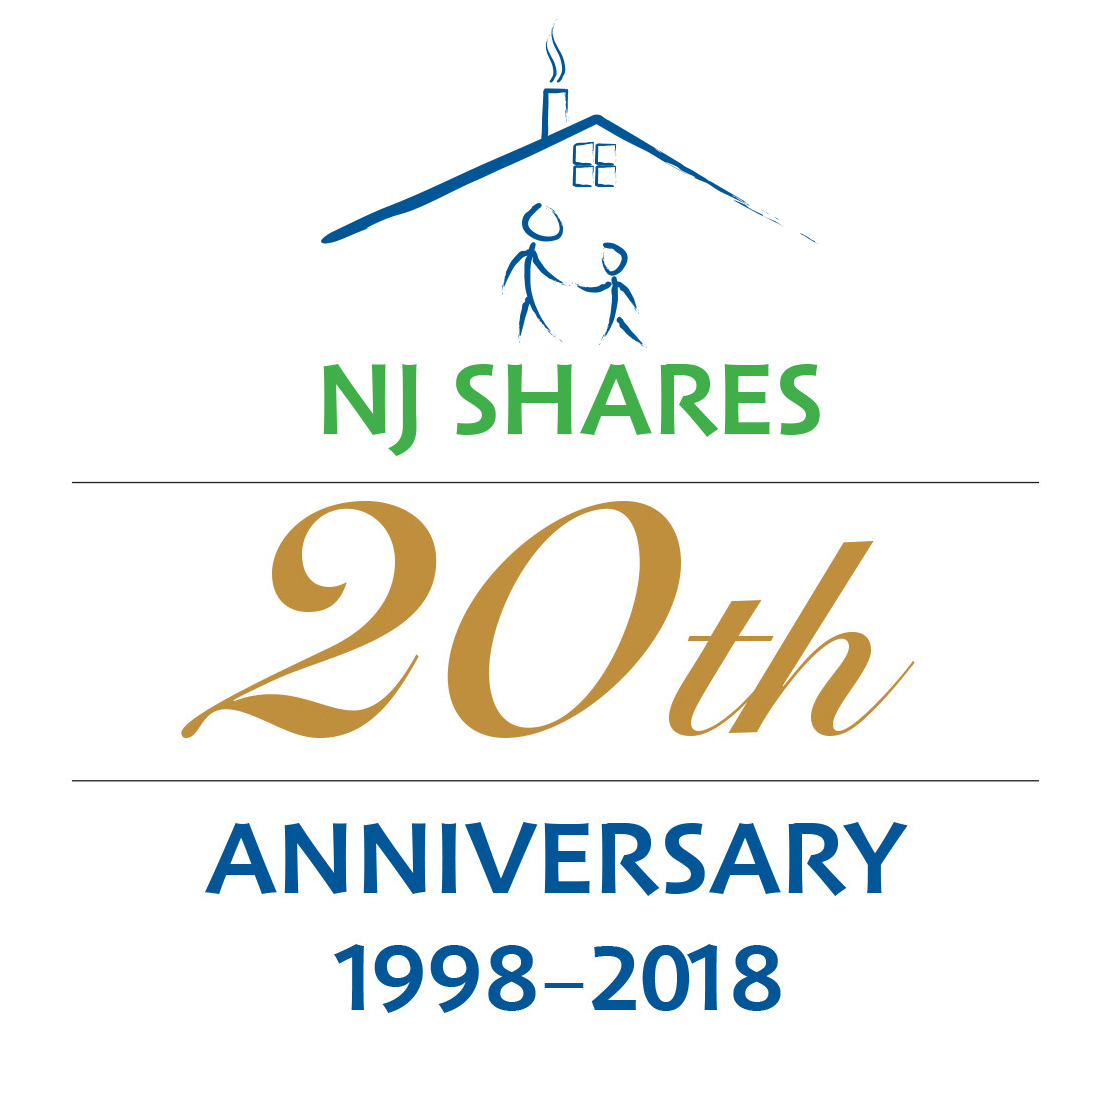 NJ SHARES' Ice House - Cool Down For Warmth Event Photo